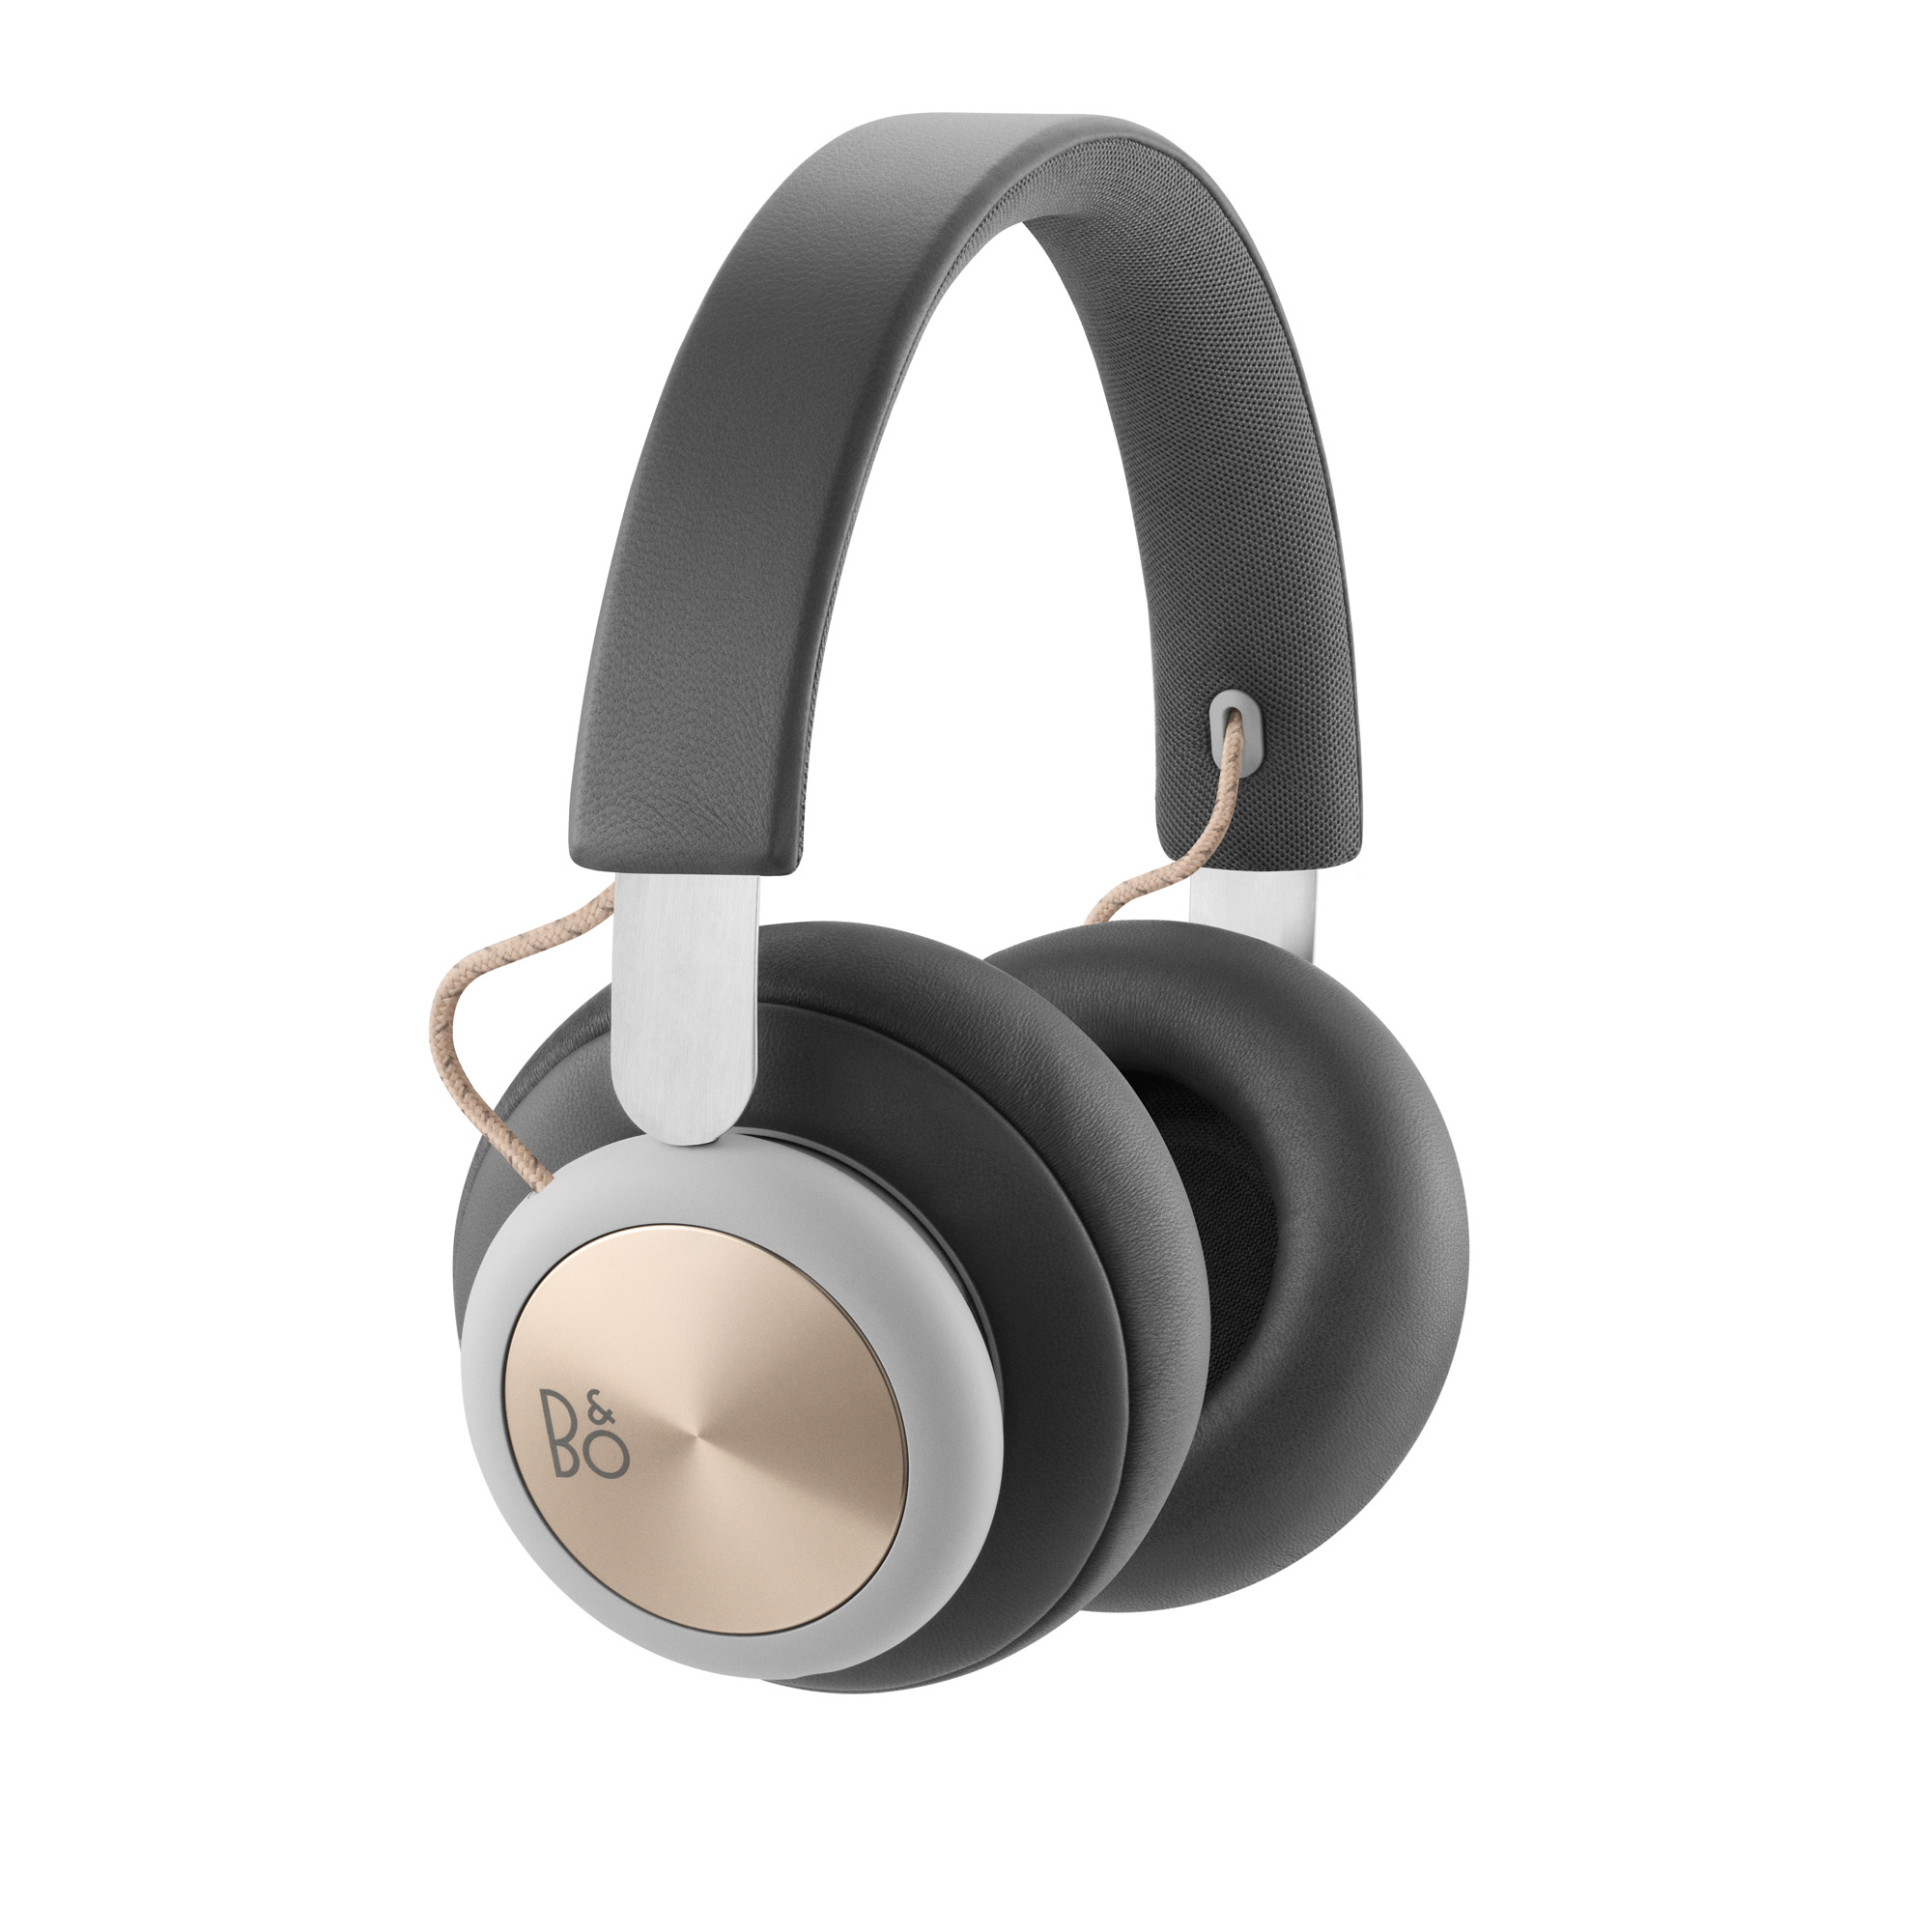 B&O Play รุ่น BeoPlay H4 Charcoal Grey